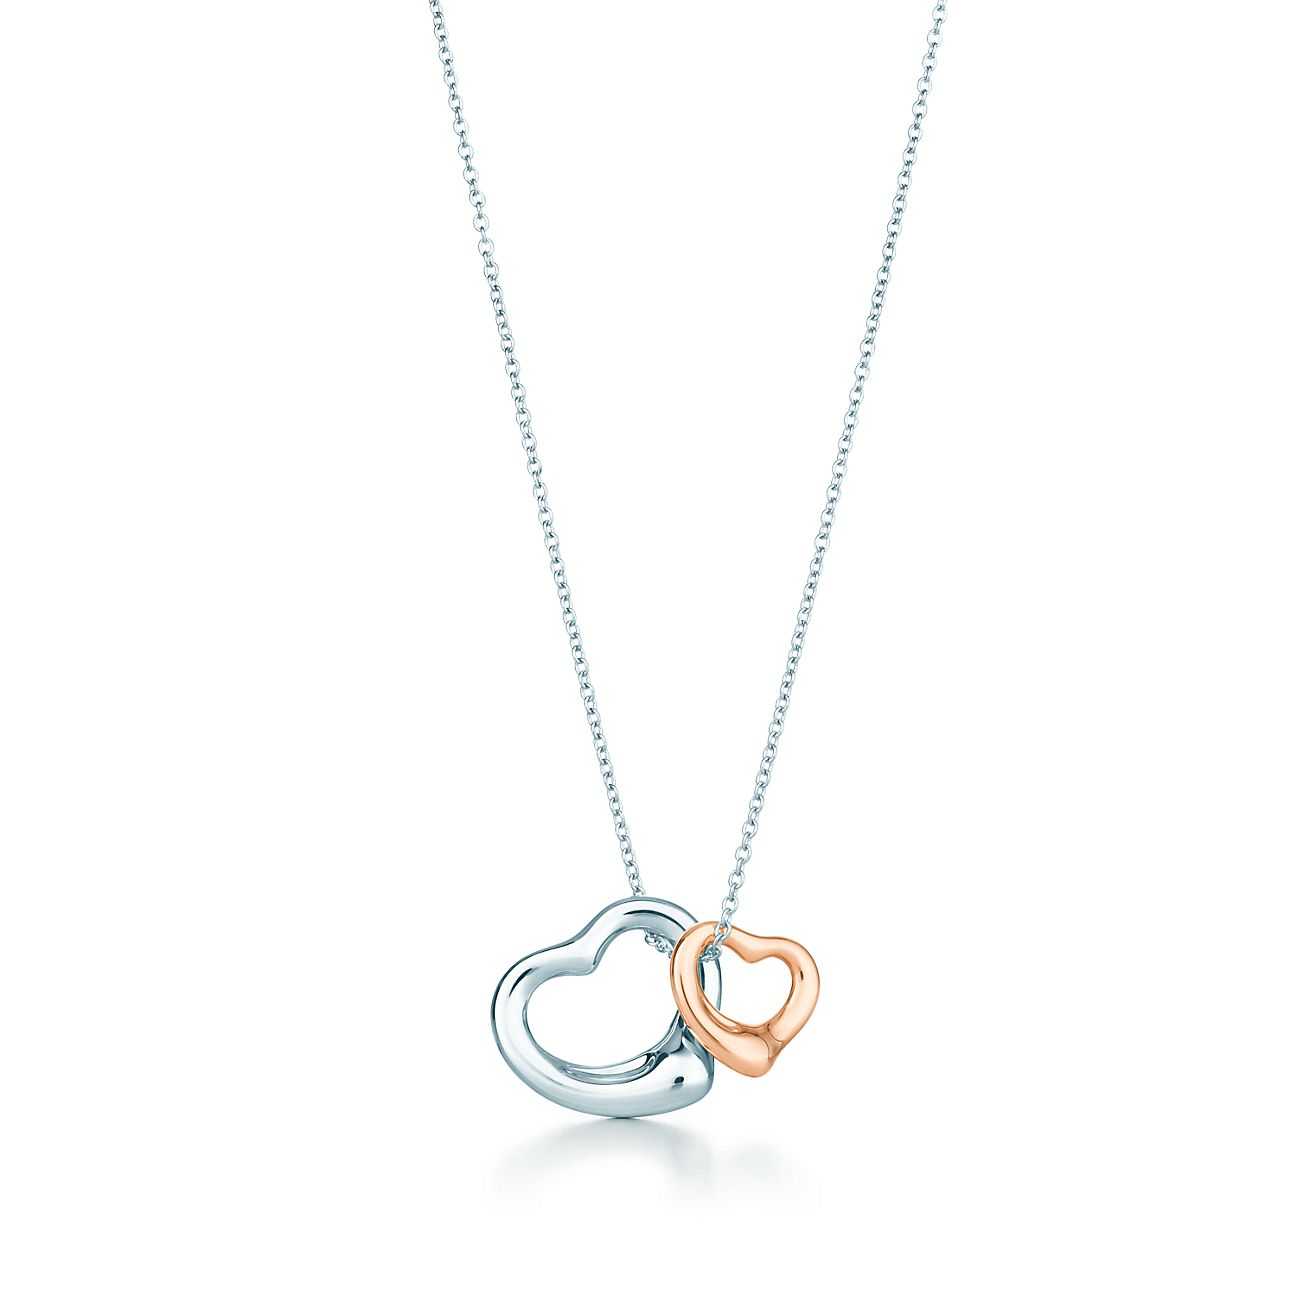 dance open jane diamond distinctive seymour round heart pendant necklace stunning hearts along by diamonds the